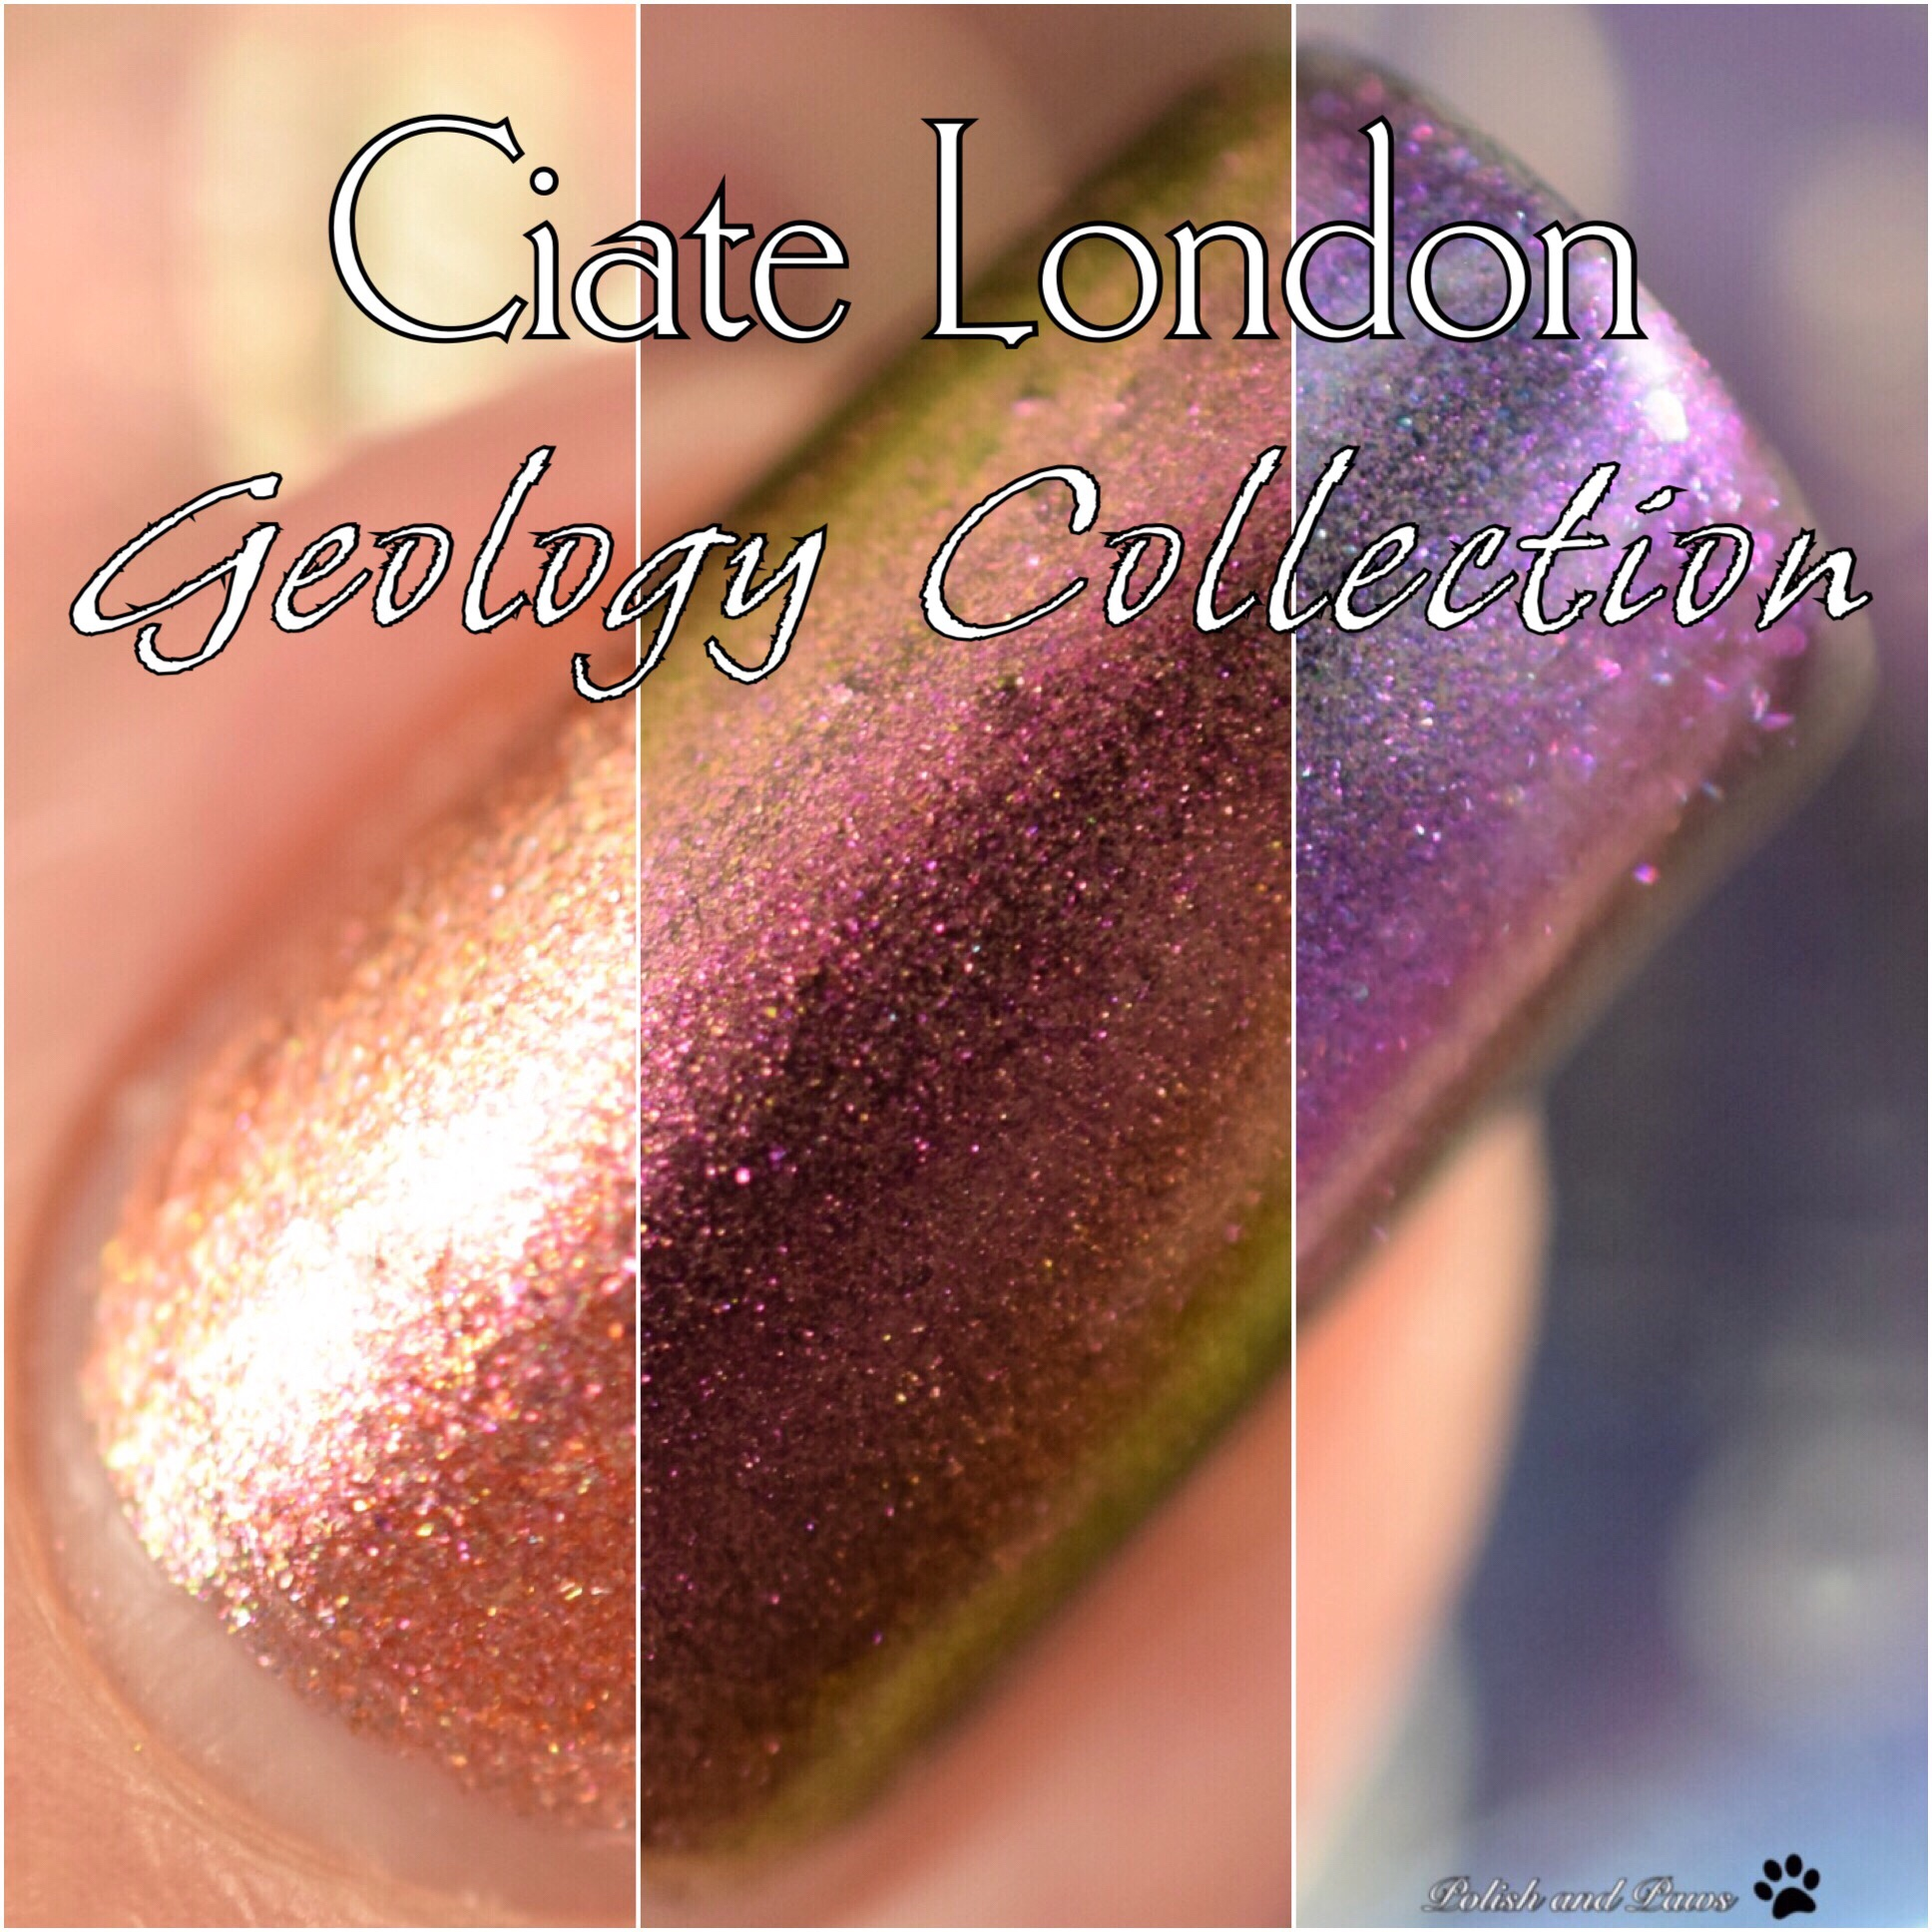 Ciate London Geology Collection SS18